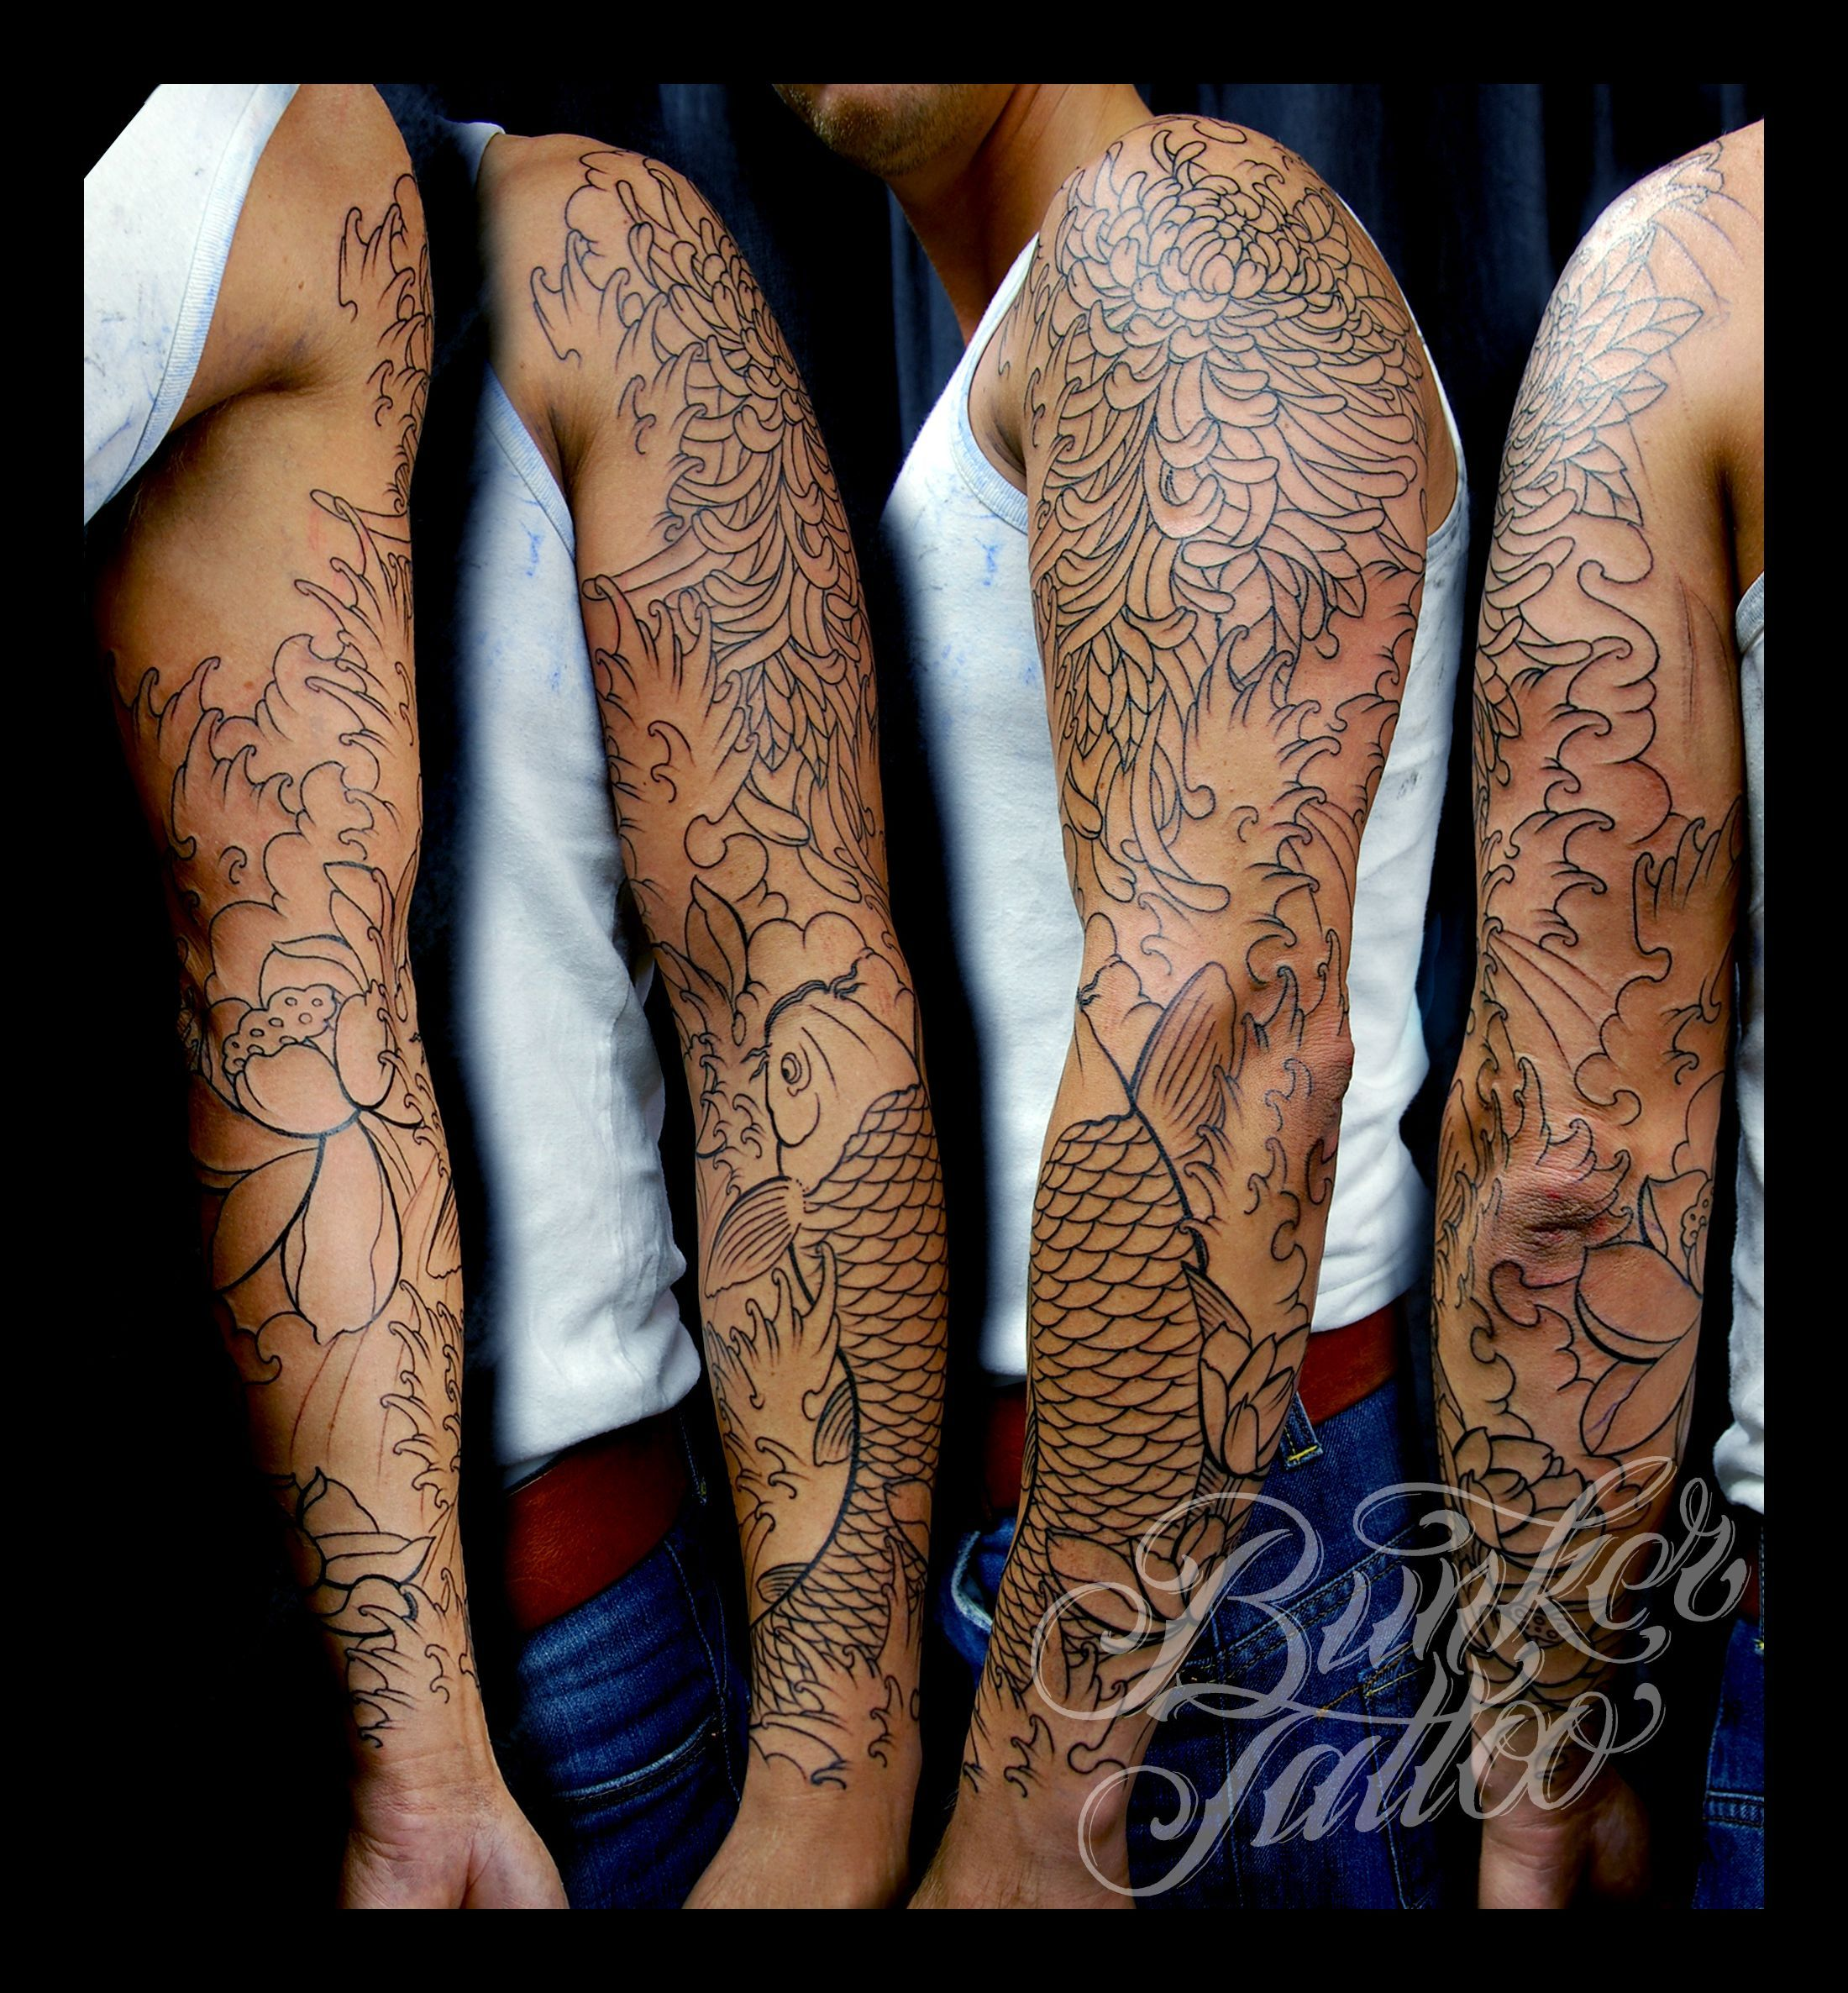 Mike S Koi Sleeve Chest Panel Unfinished Big Jpg 2400 3200: Pin By Michael Michelle On Tattoos